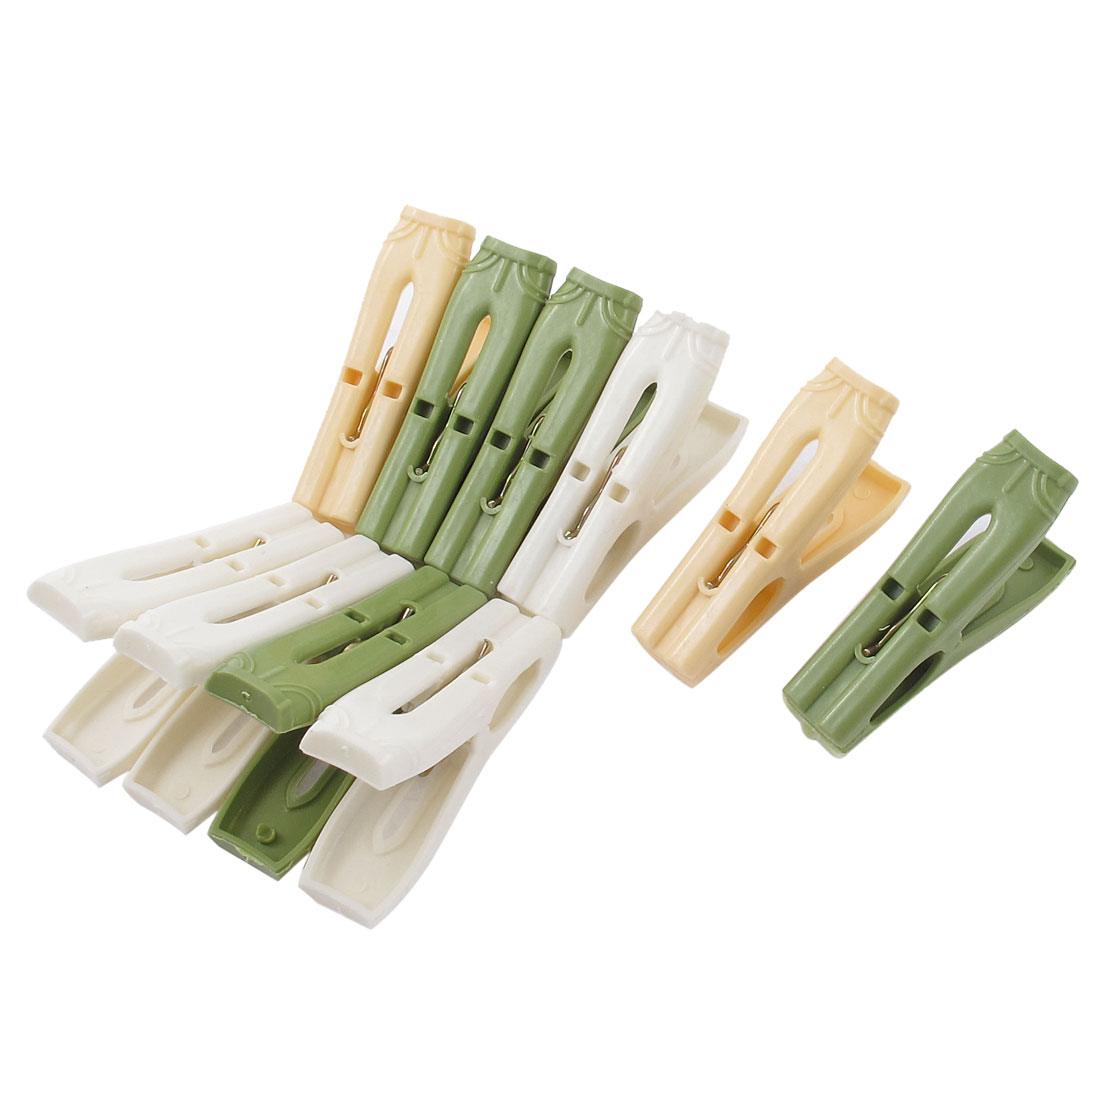 Home Spring Loaded Towl Socks Clothes Clip Clothespin Pegs 10 Pcs Multicolor